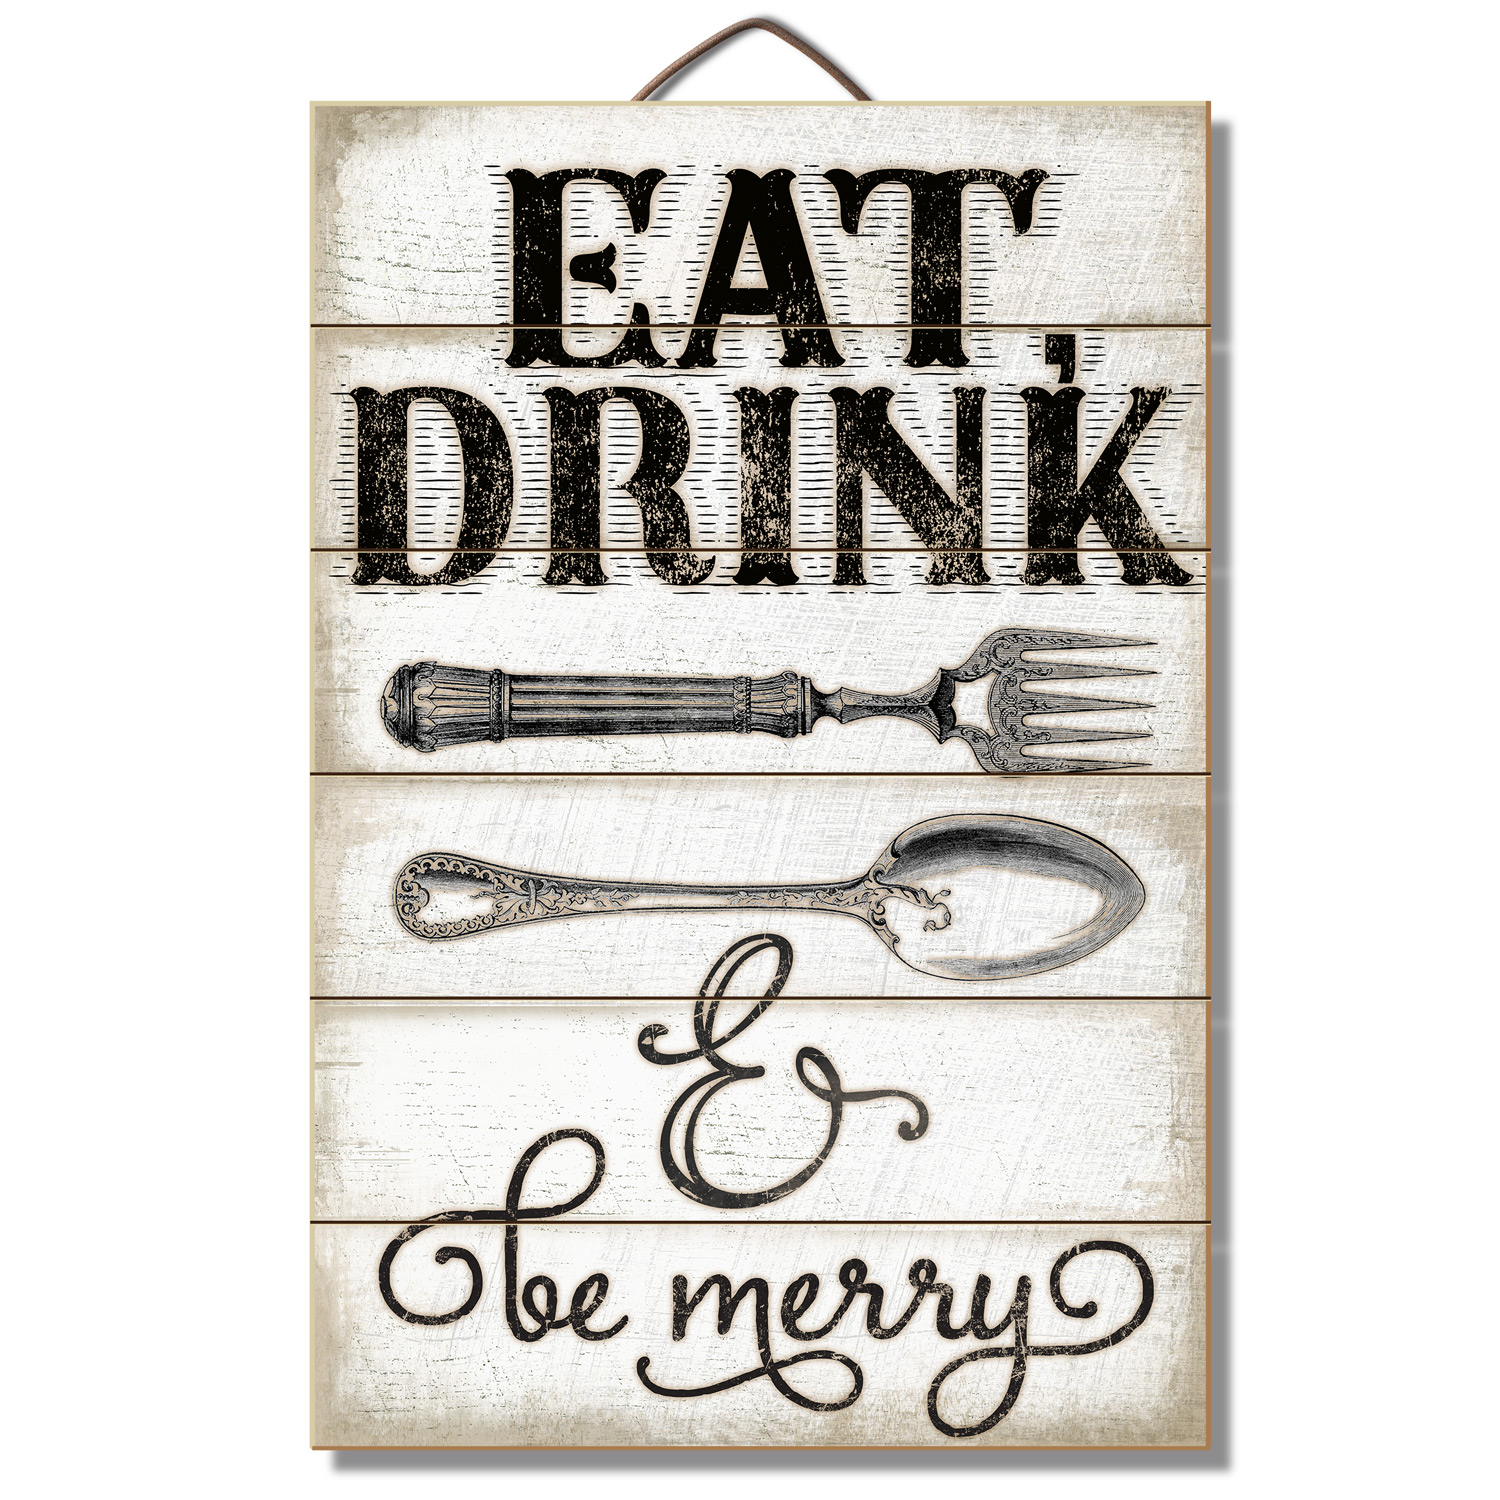 "18"" Vintage Fork and Spoon Art Wall Decor Sign 'Eat, Drink and Be Merry'"